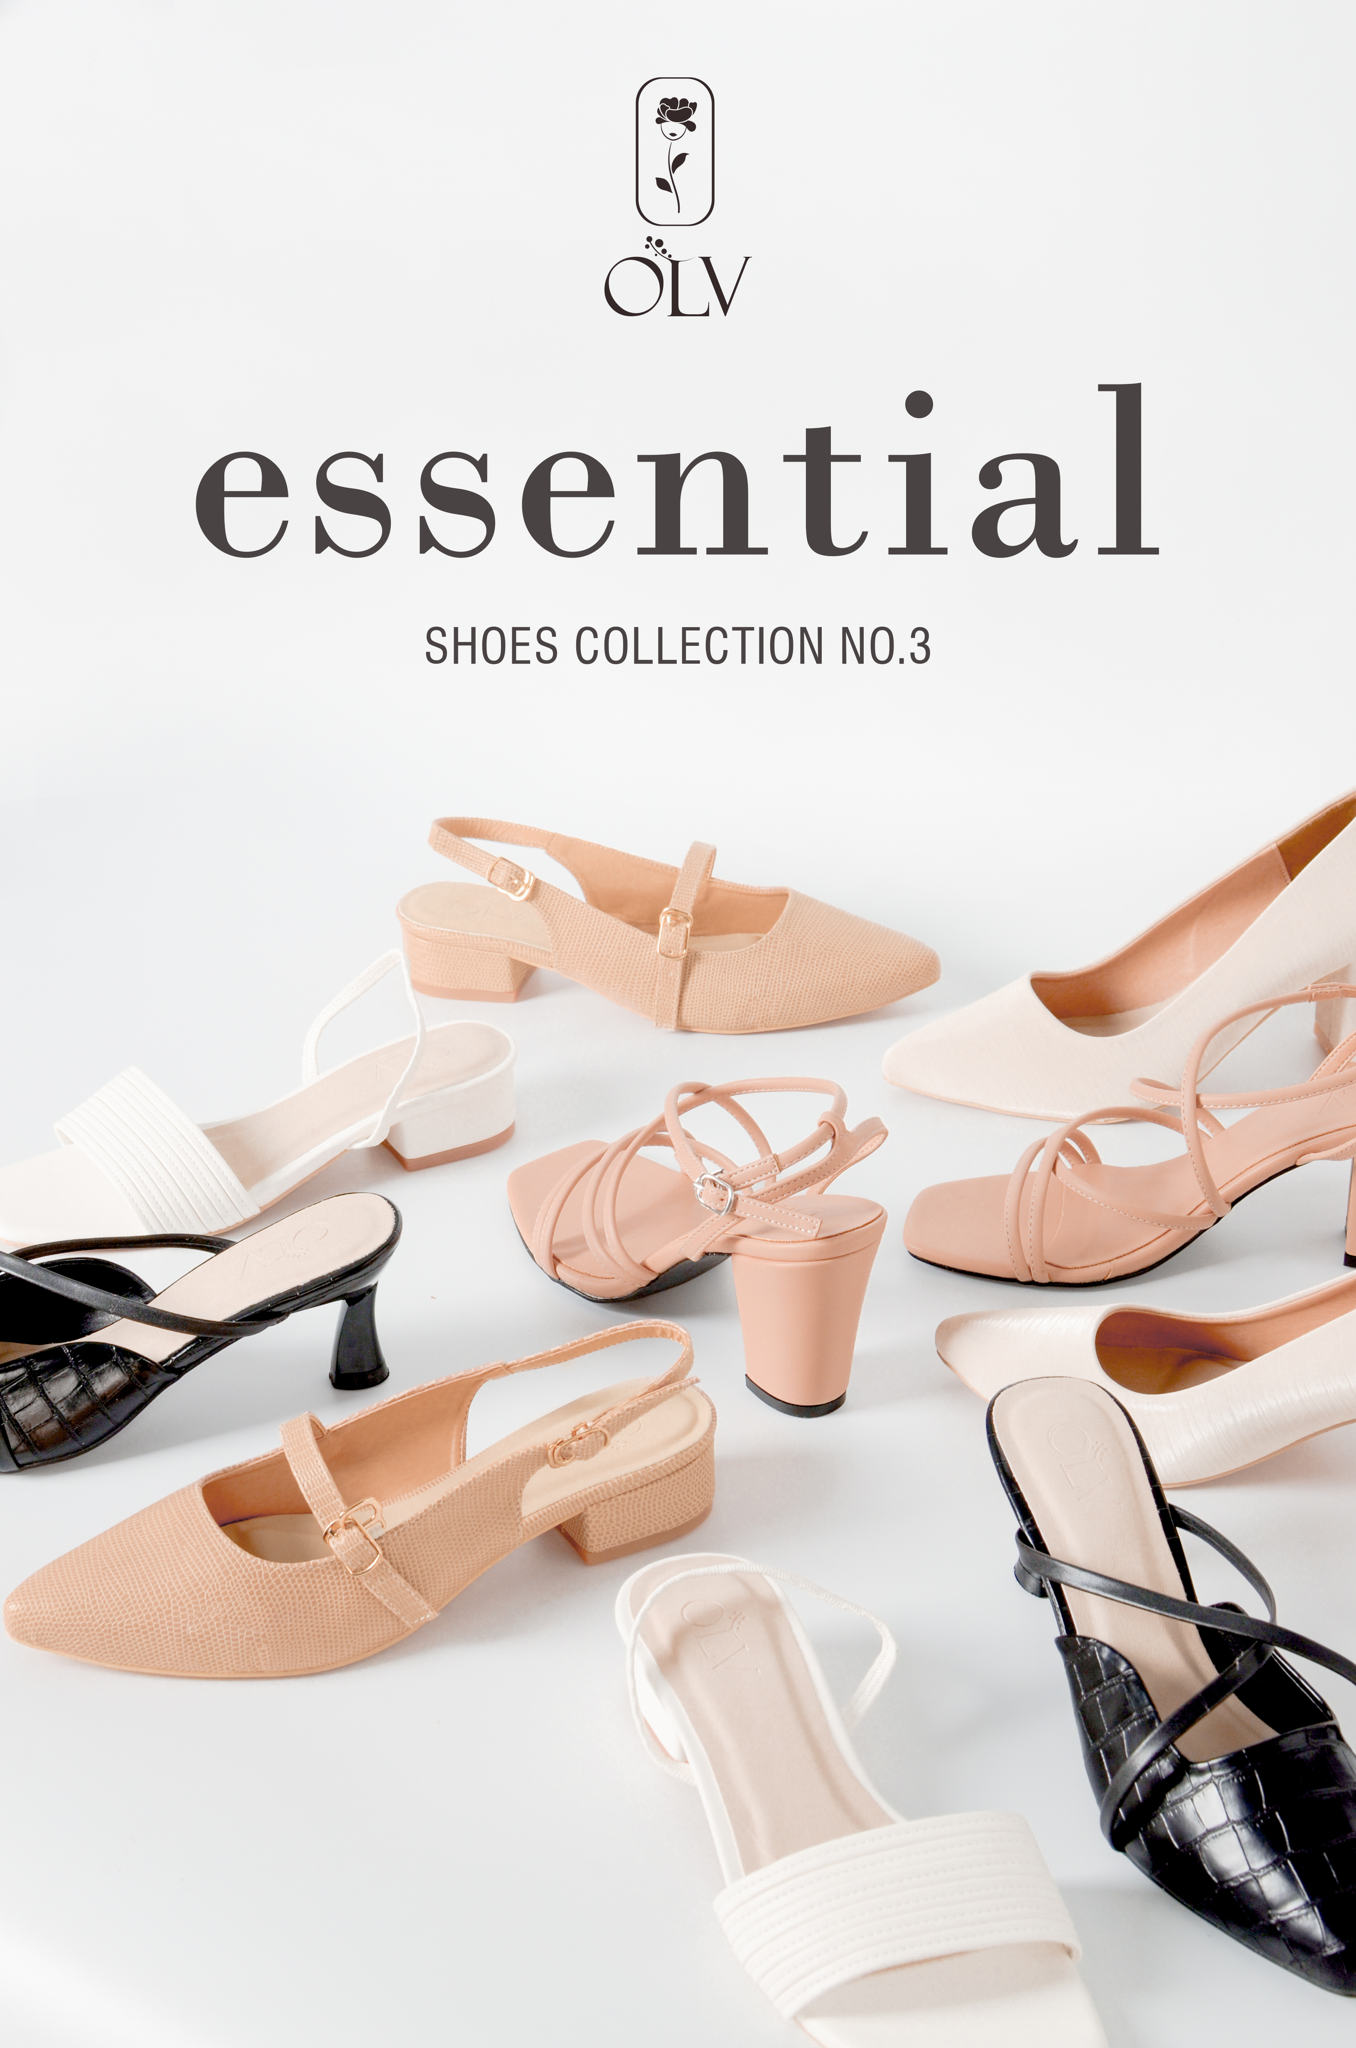 olv essential shoes collection 03